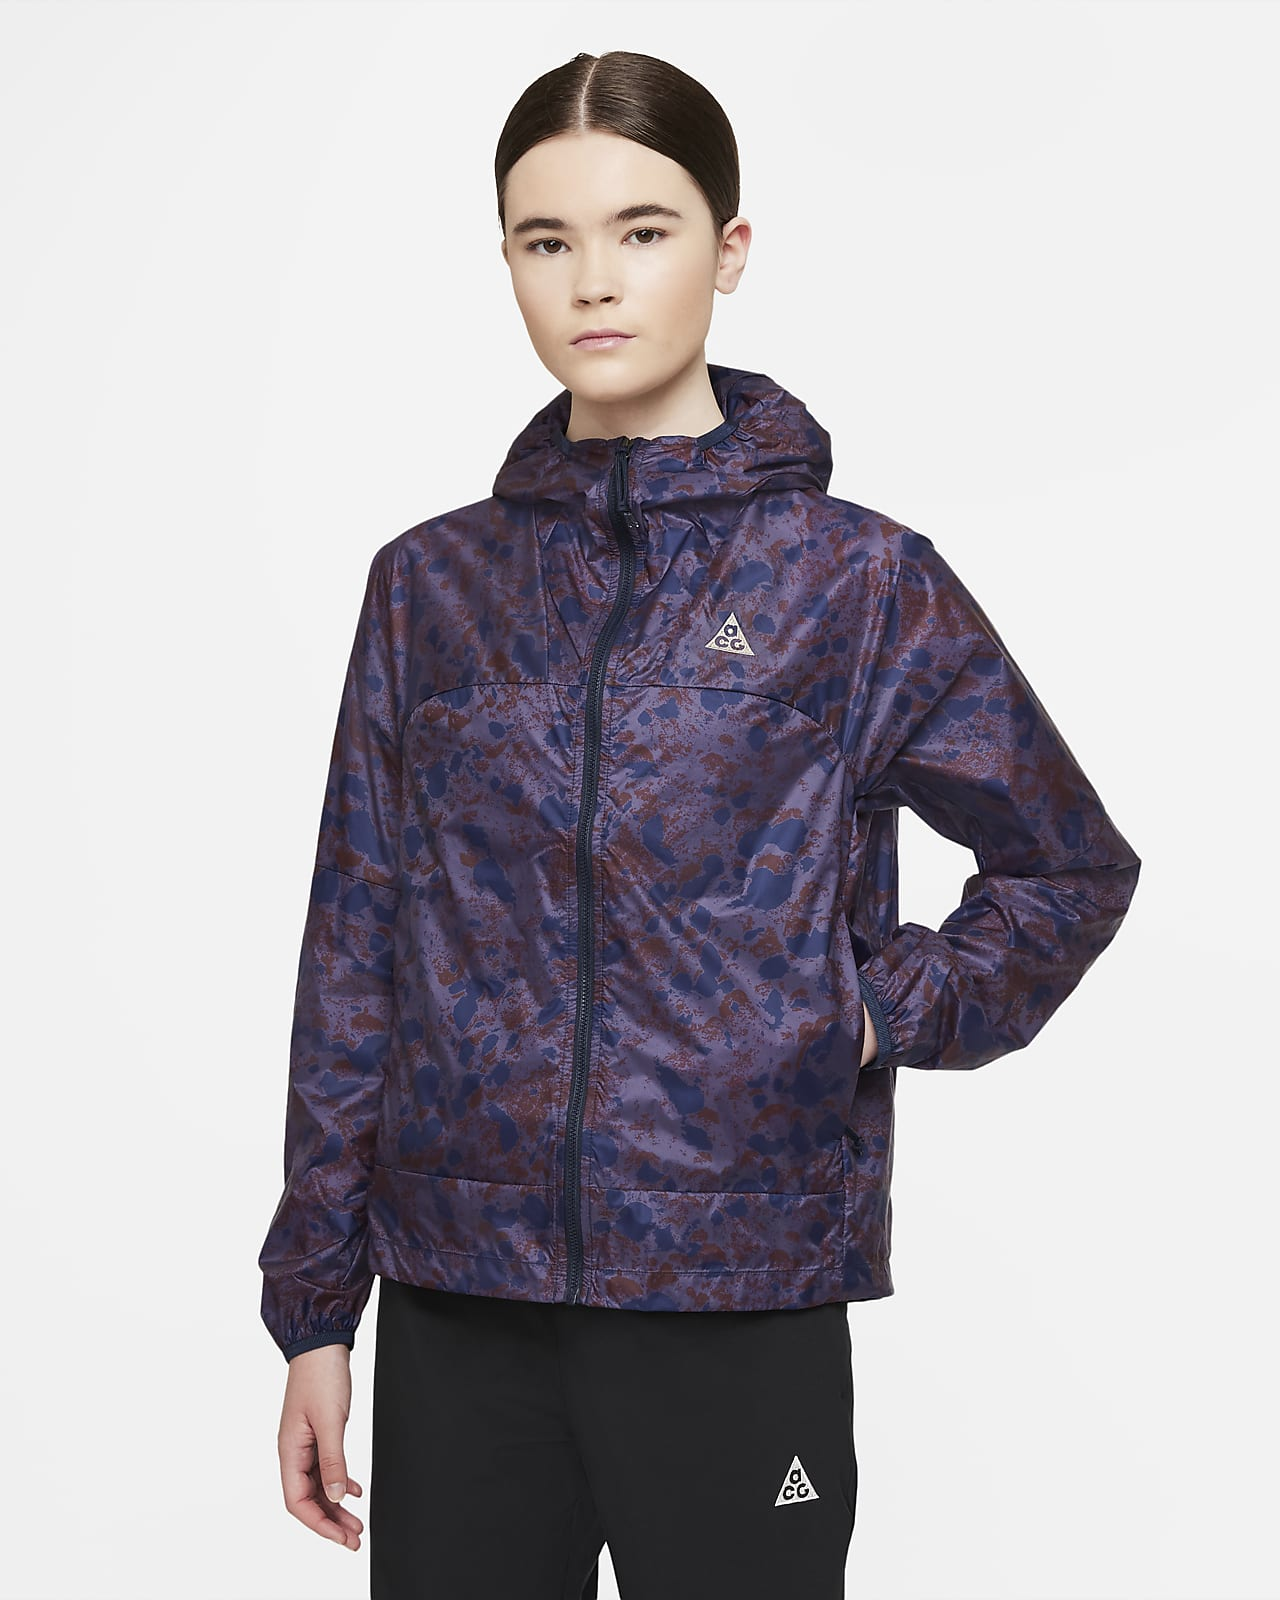 Nike ACG 'Cinder Cone' Women's All-over Print Jacket